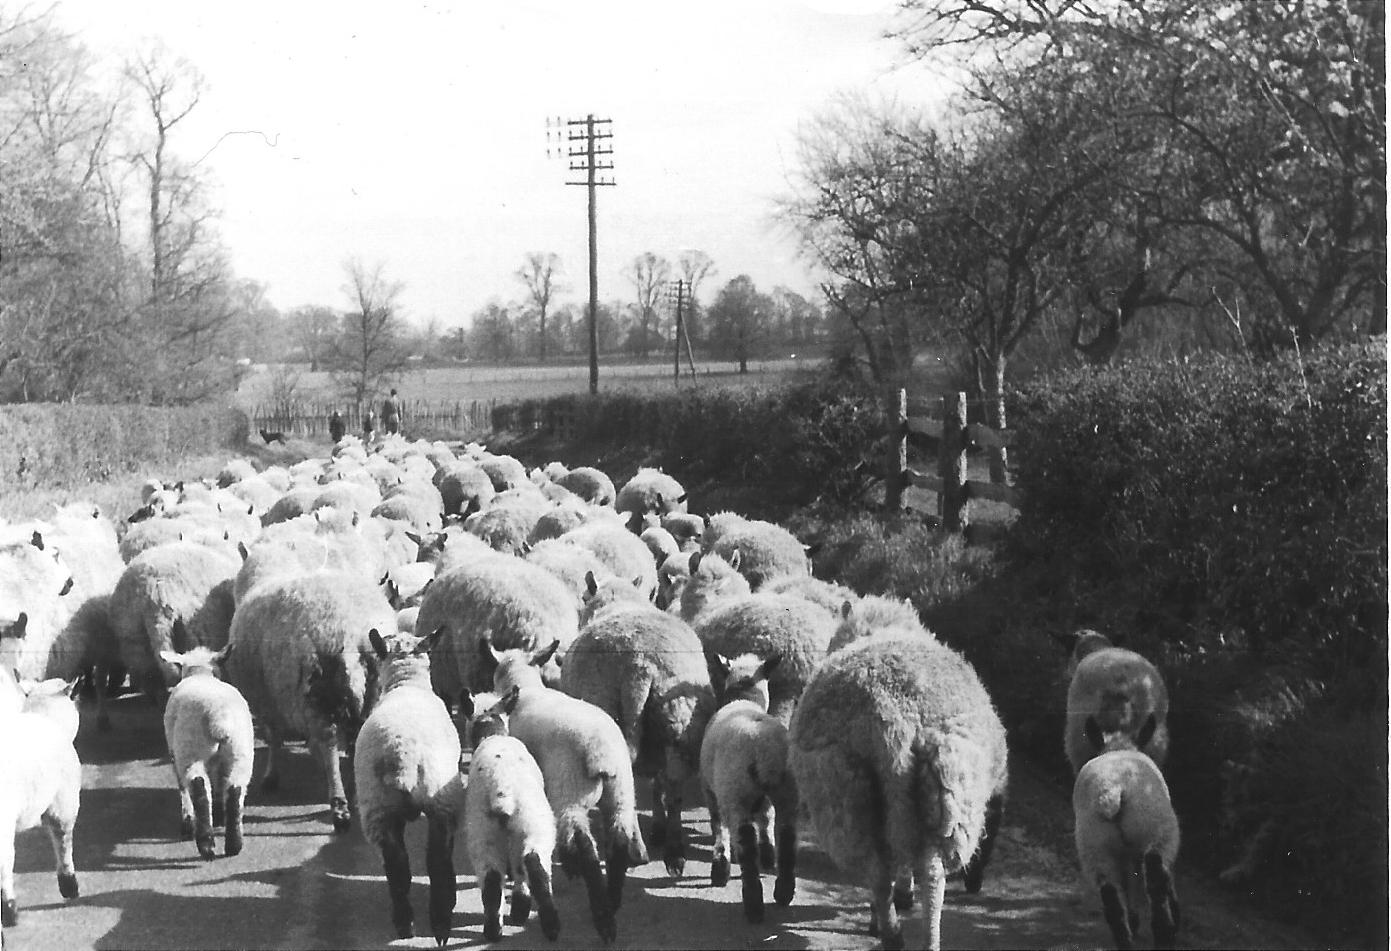 Moving sheep to new pastures, a timeless scene! — Courtesy of H. Spencer